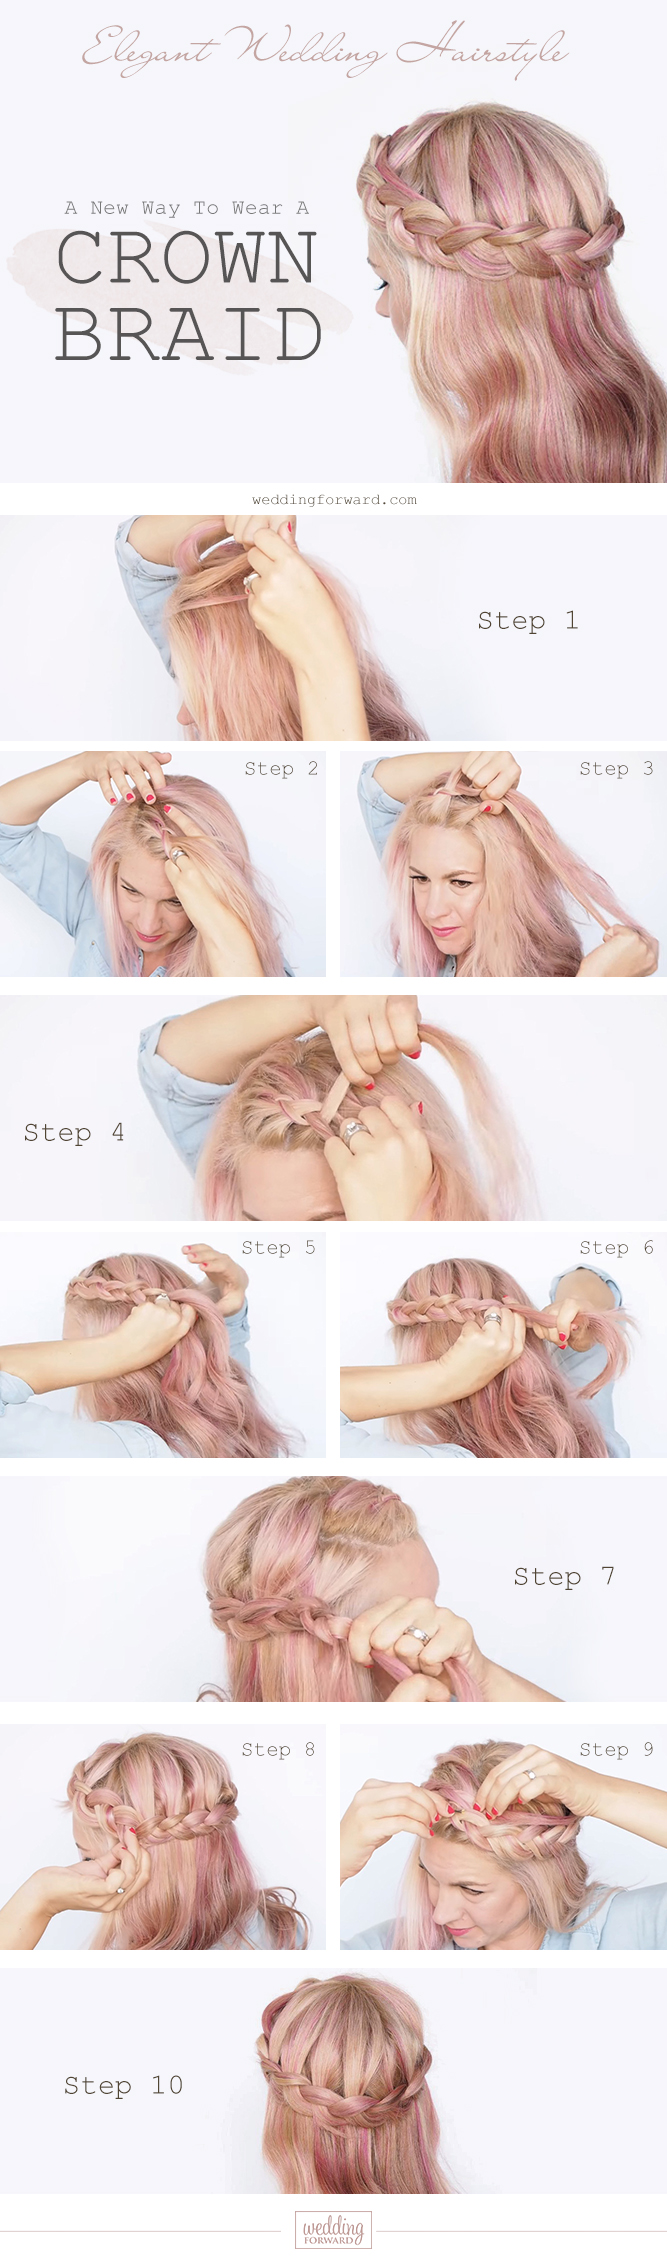 boho wedding hairstyles braided crown tutorial